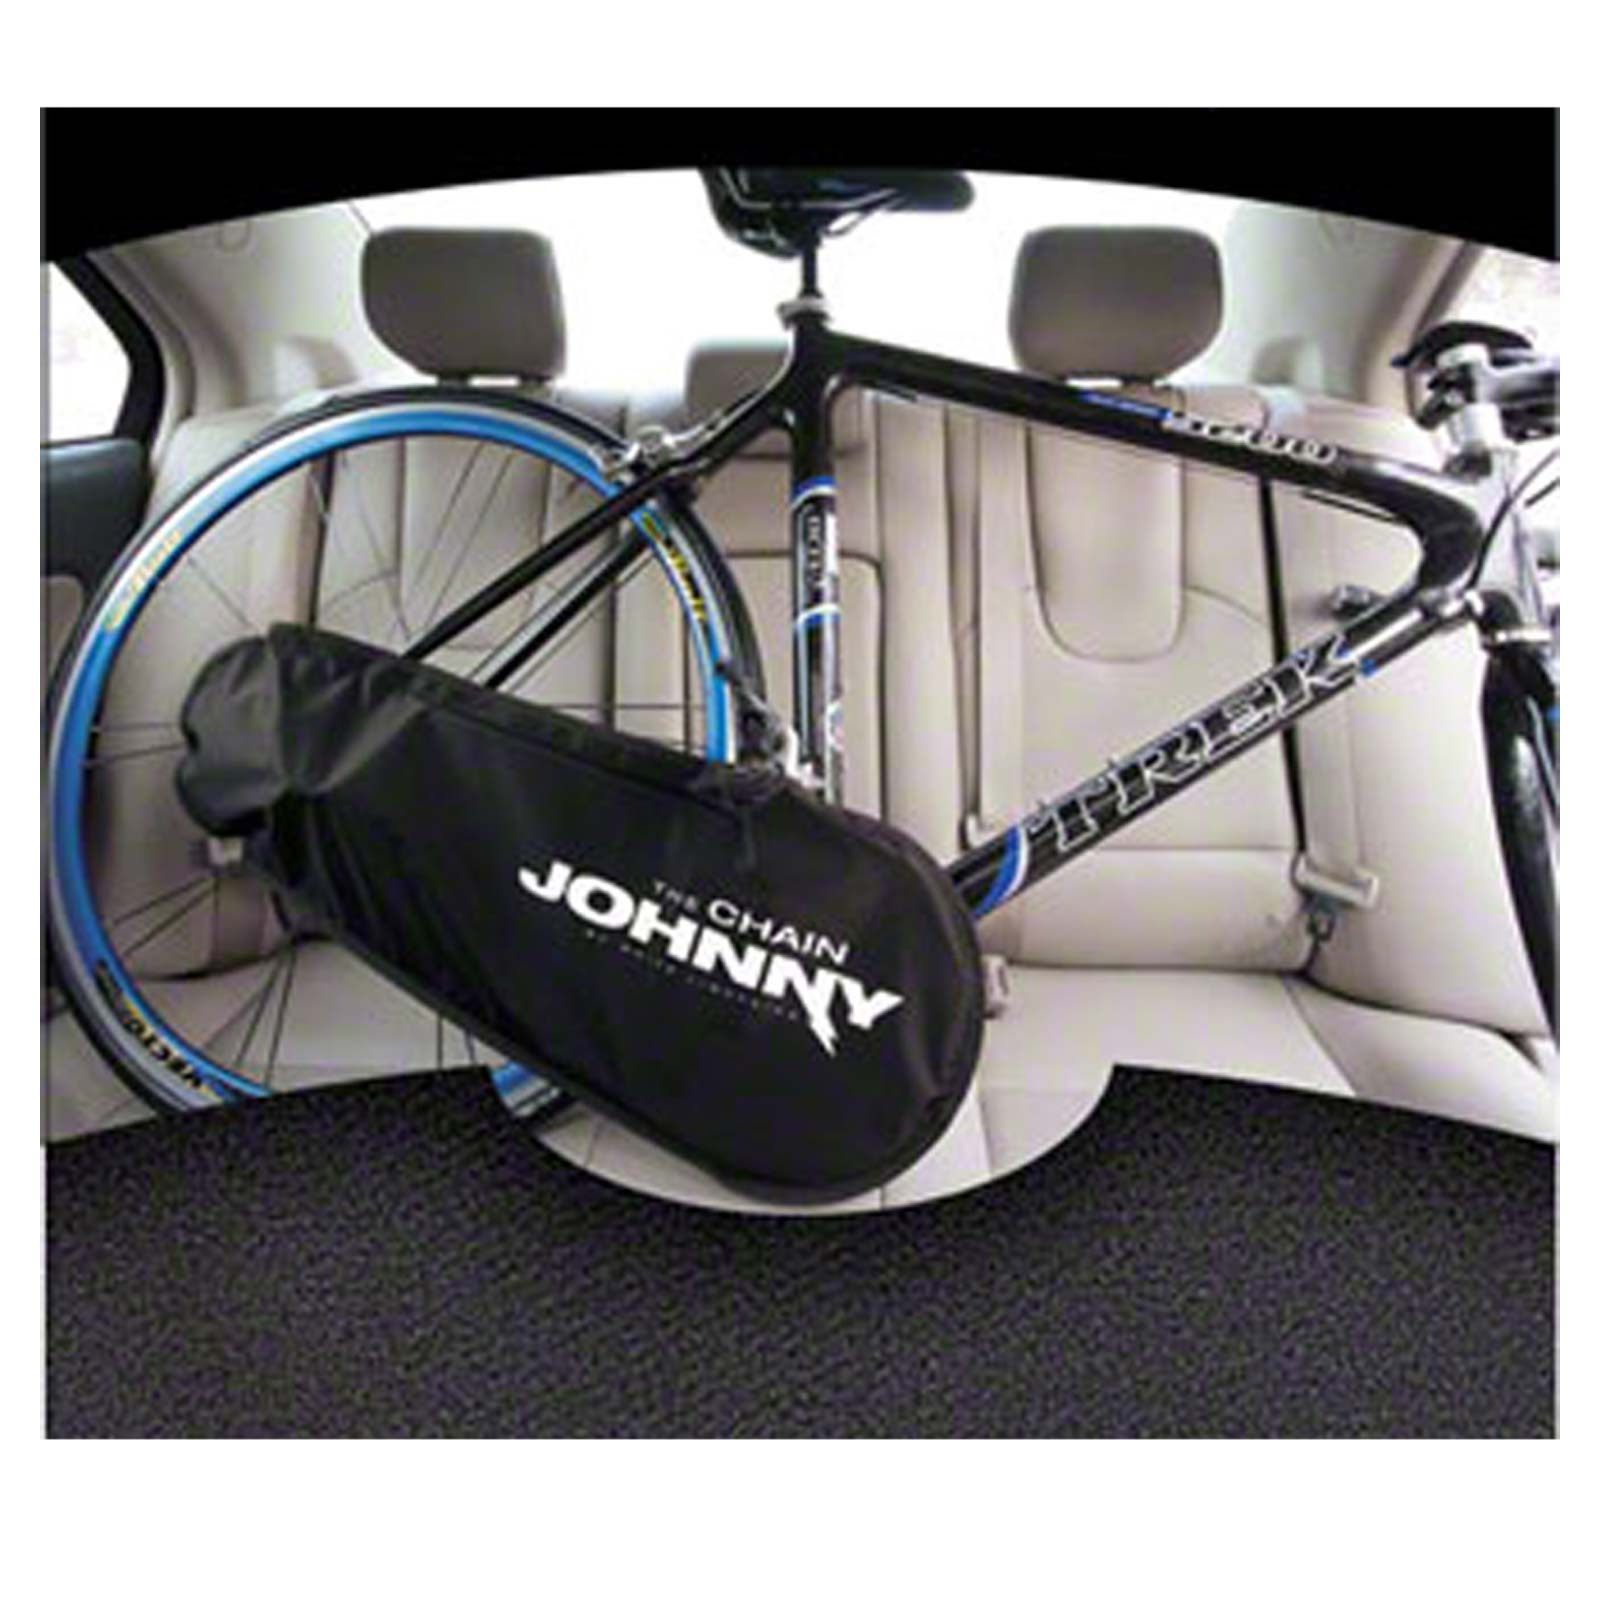 White Lightning Chain Johnny Bicycle Drivetrain Cover